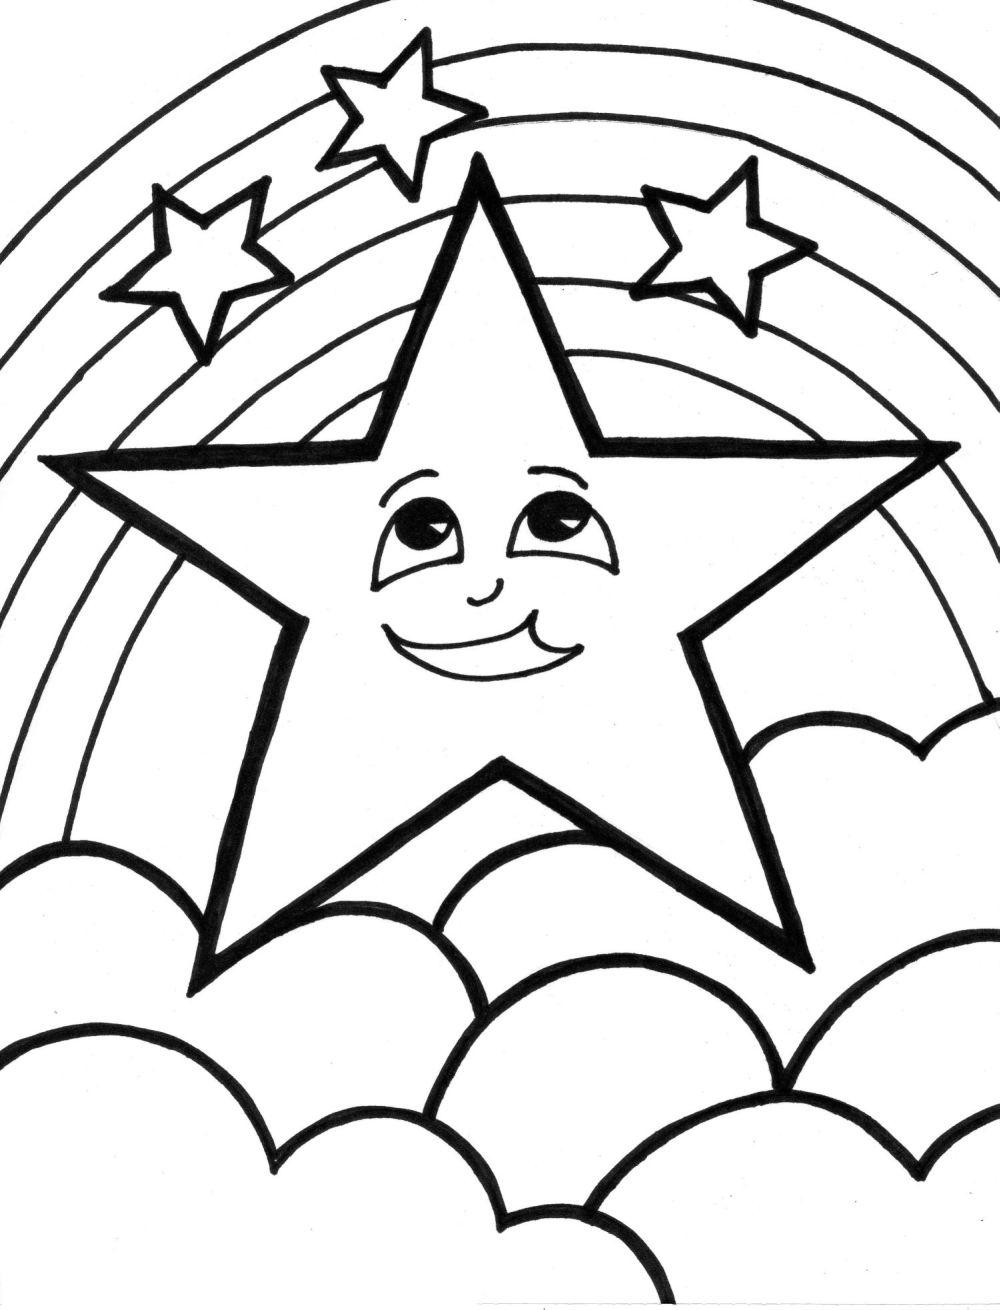 printable star pictures 5 best images of small cut out star template printable pictures printable star